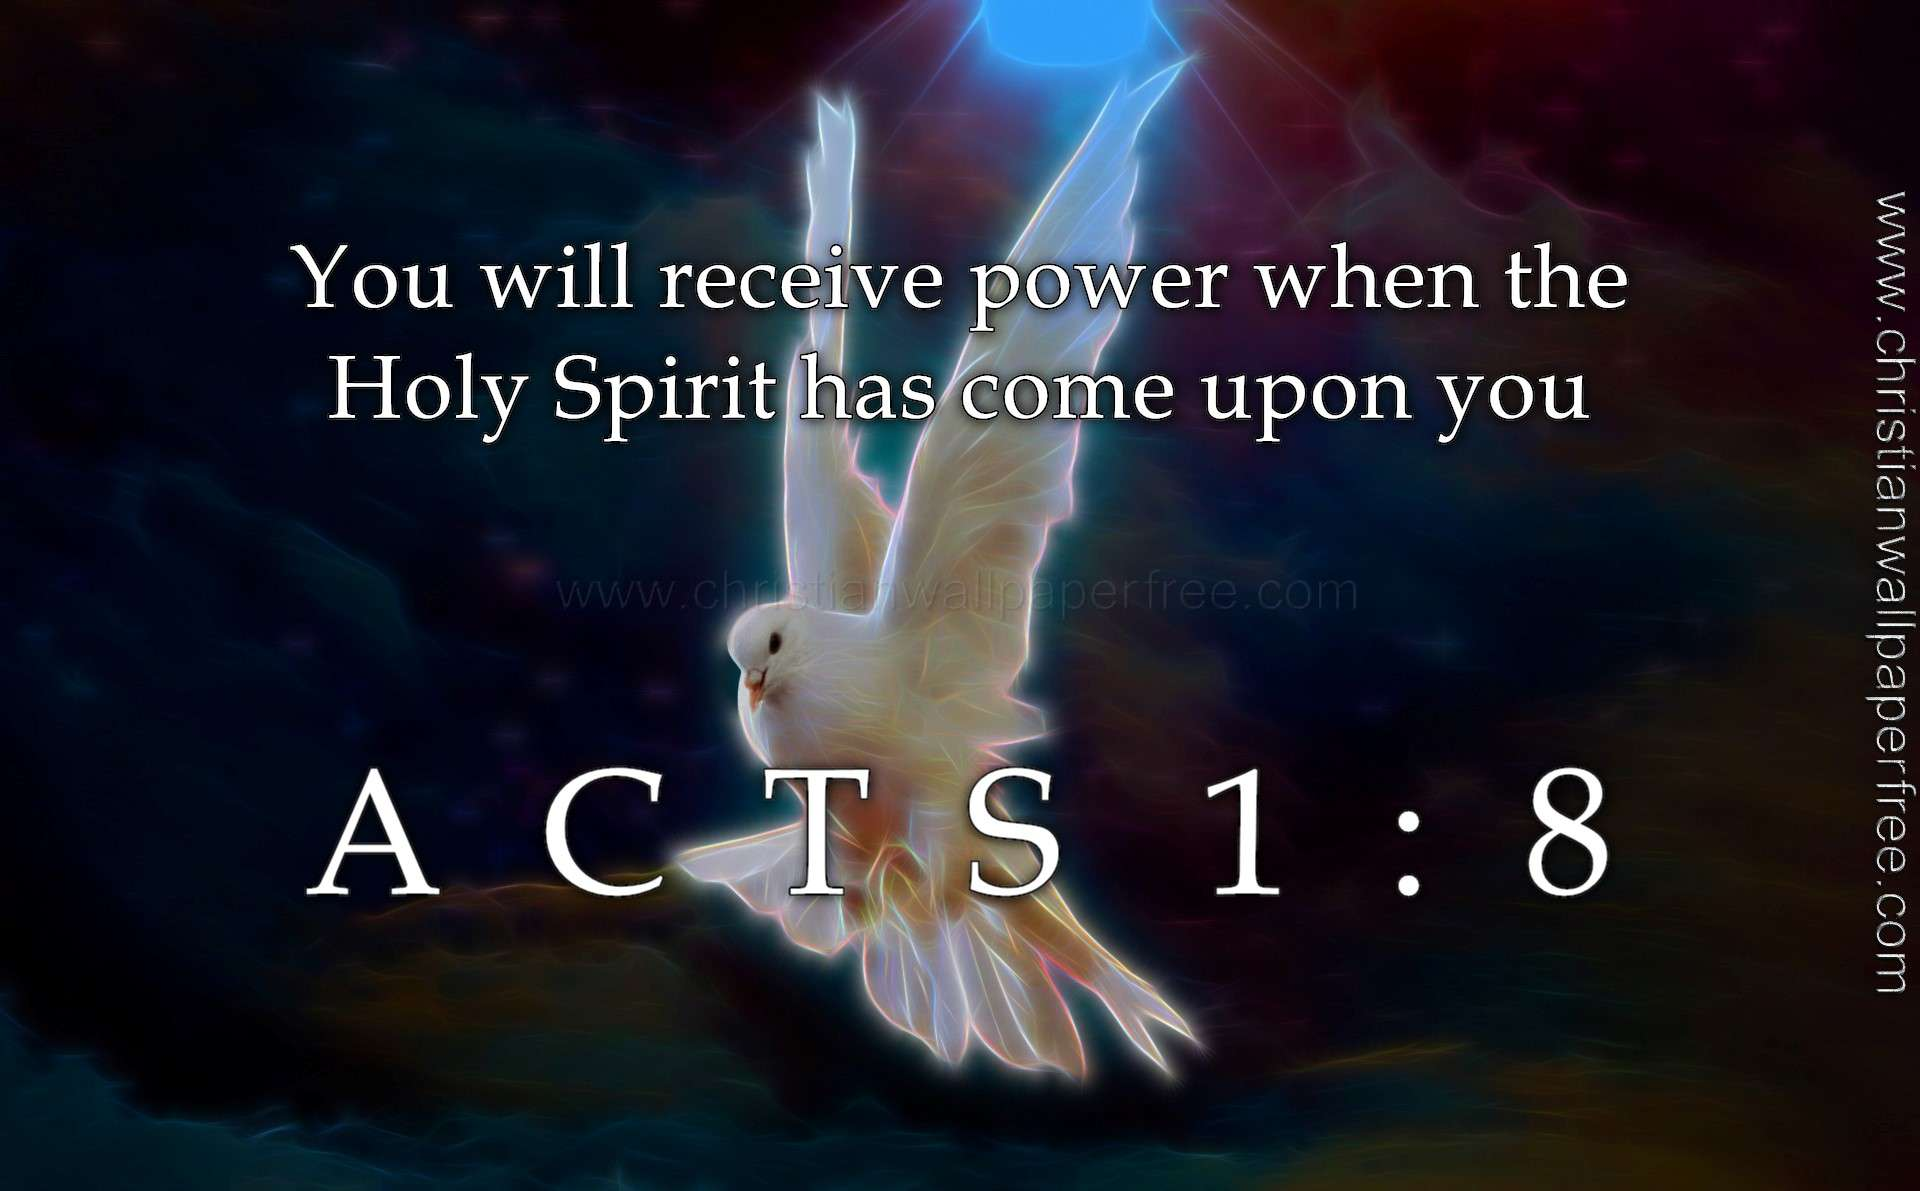 Acts 1 Verse 8